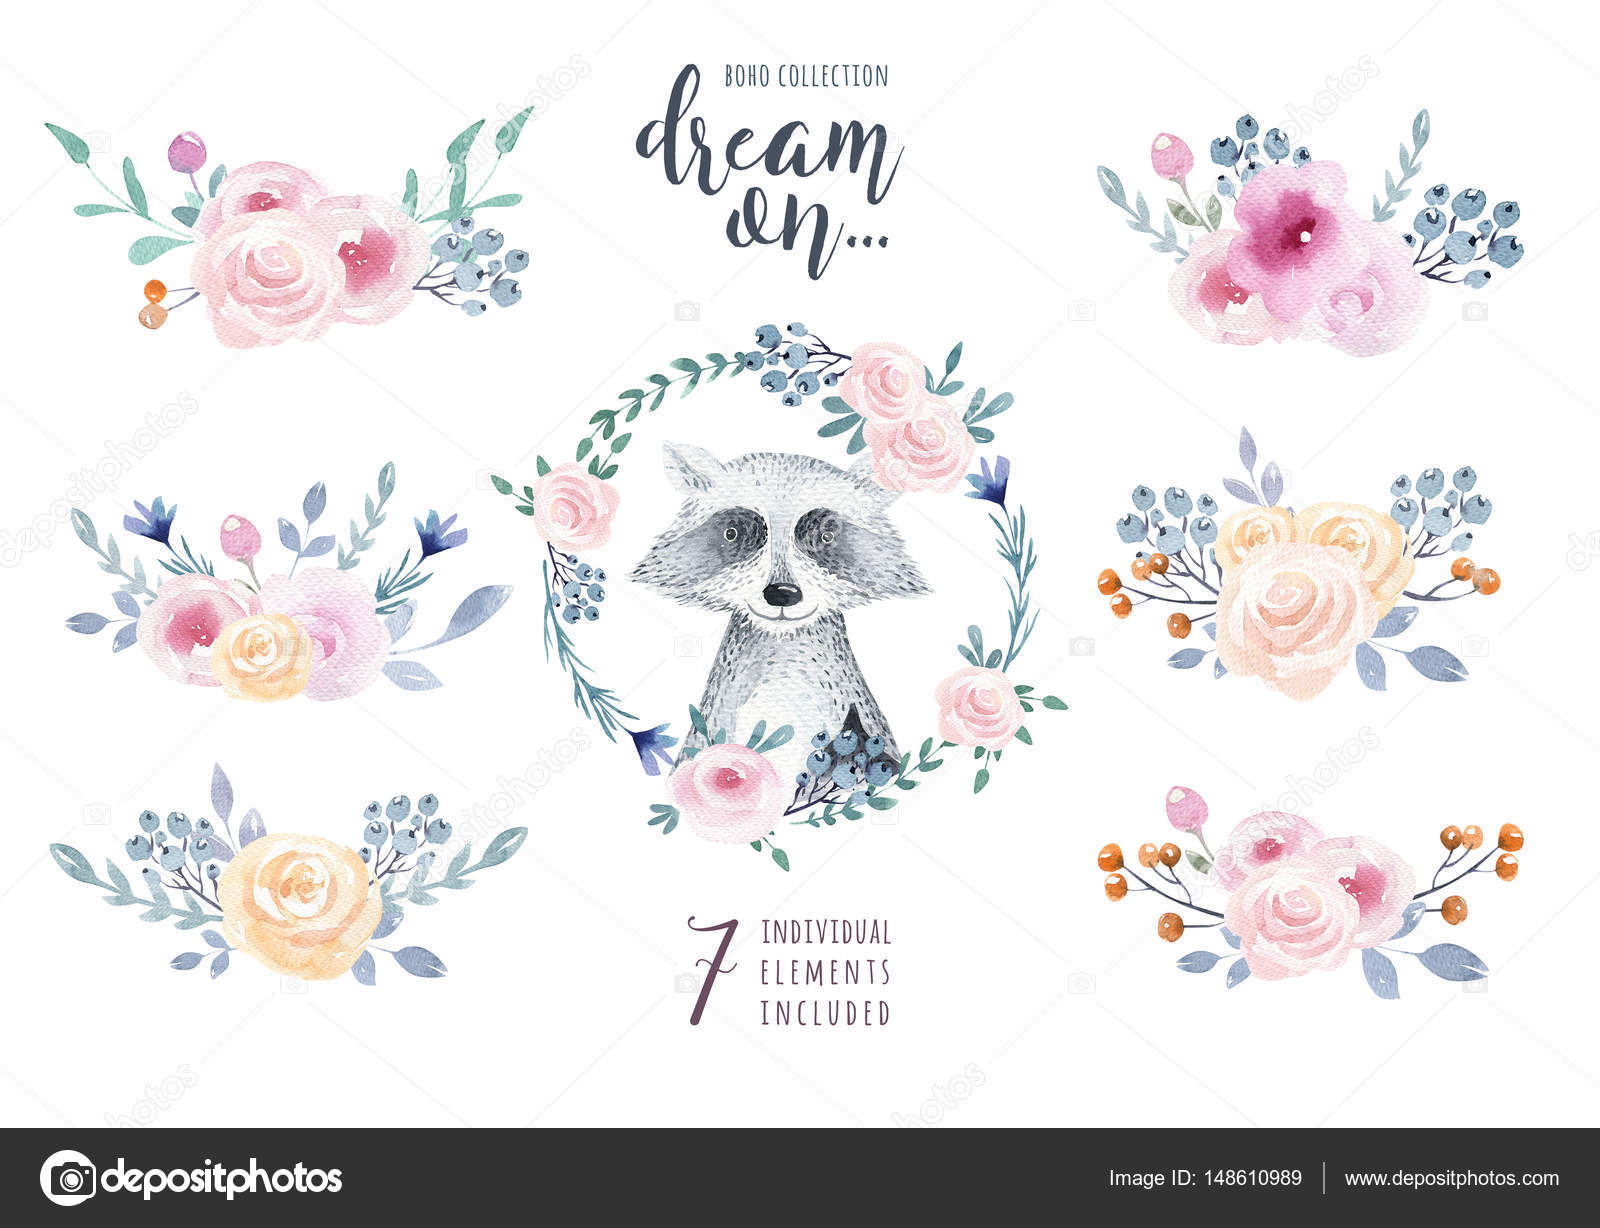 Boho Floral Pattern With Raccoons Stock Photo